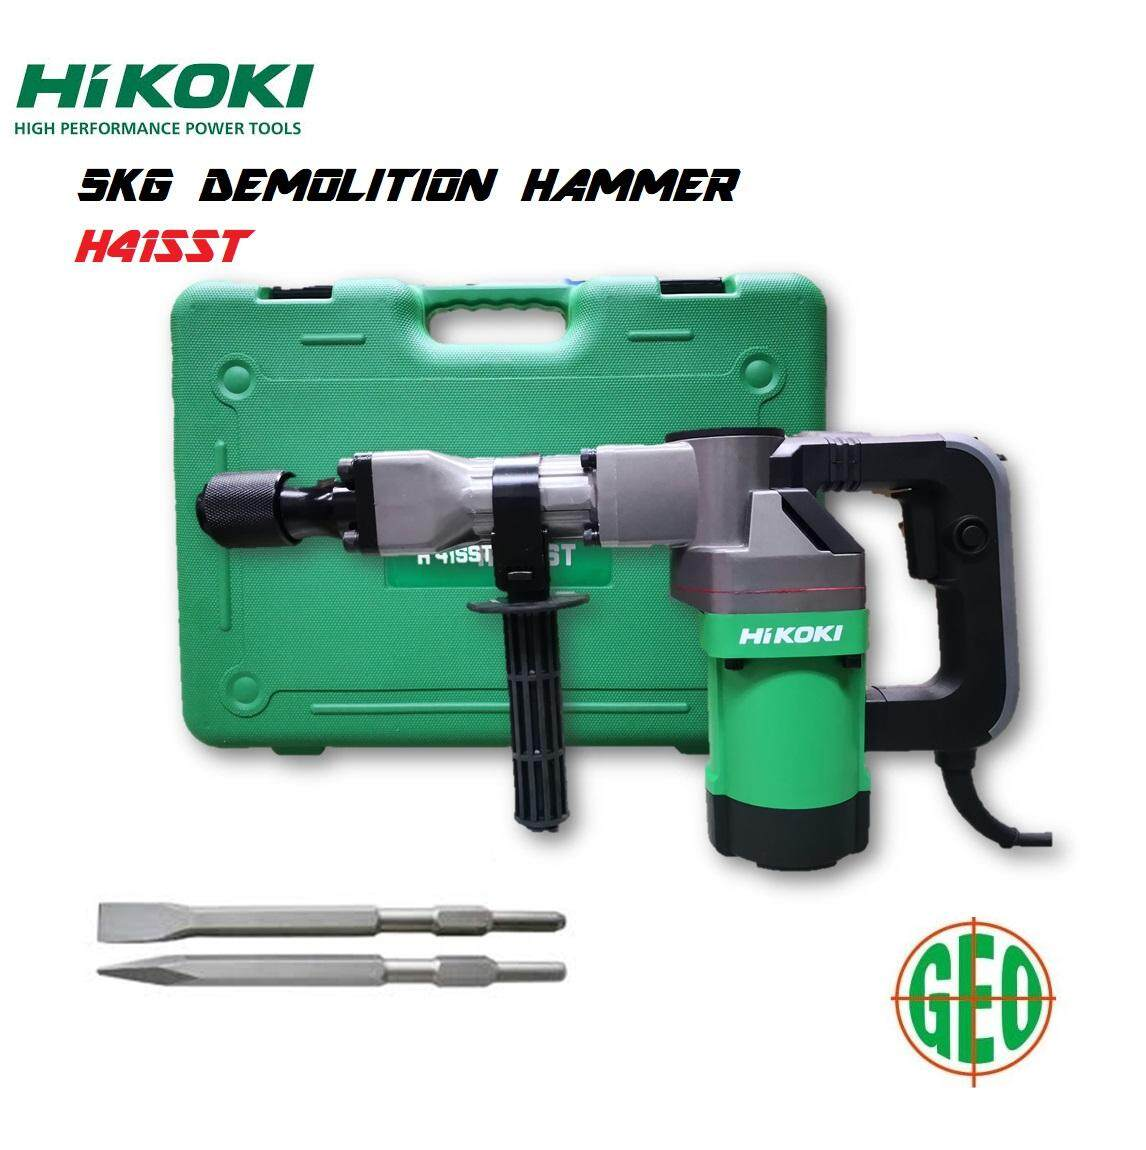 HIKOKI H41SST 1010W 5KG DEMOLITION HAMMER BUNDLE WITH CHISELS AND GREASE